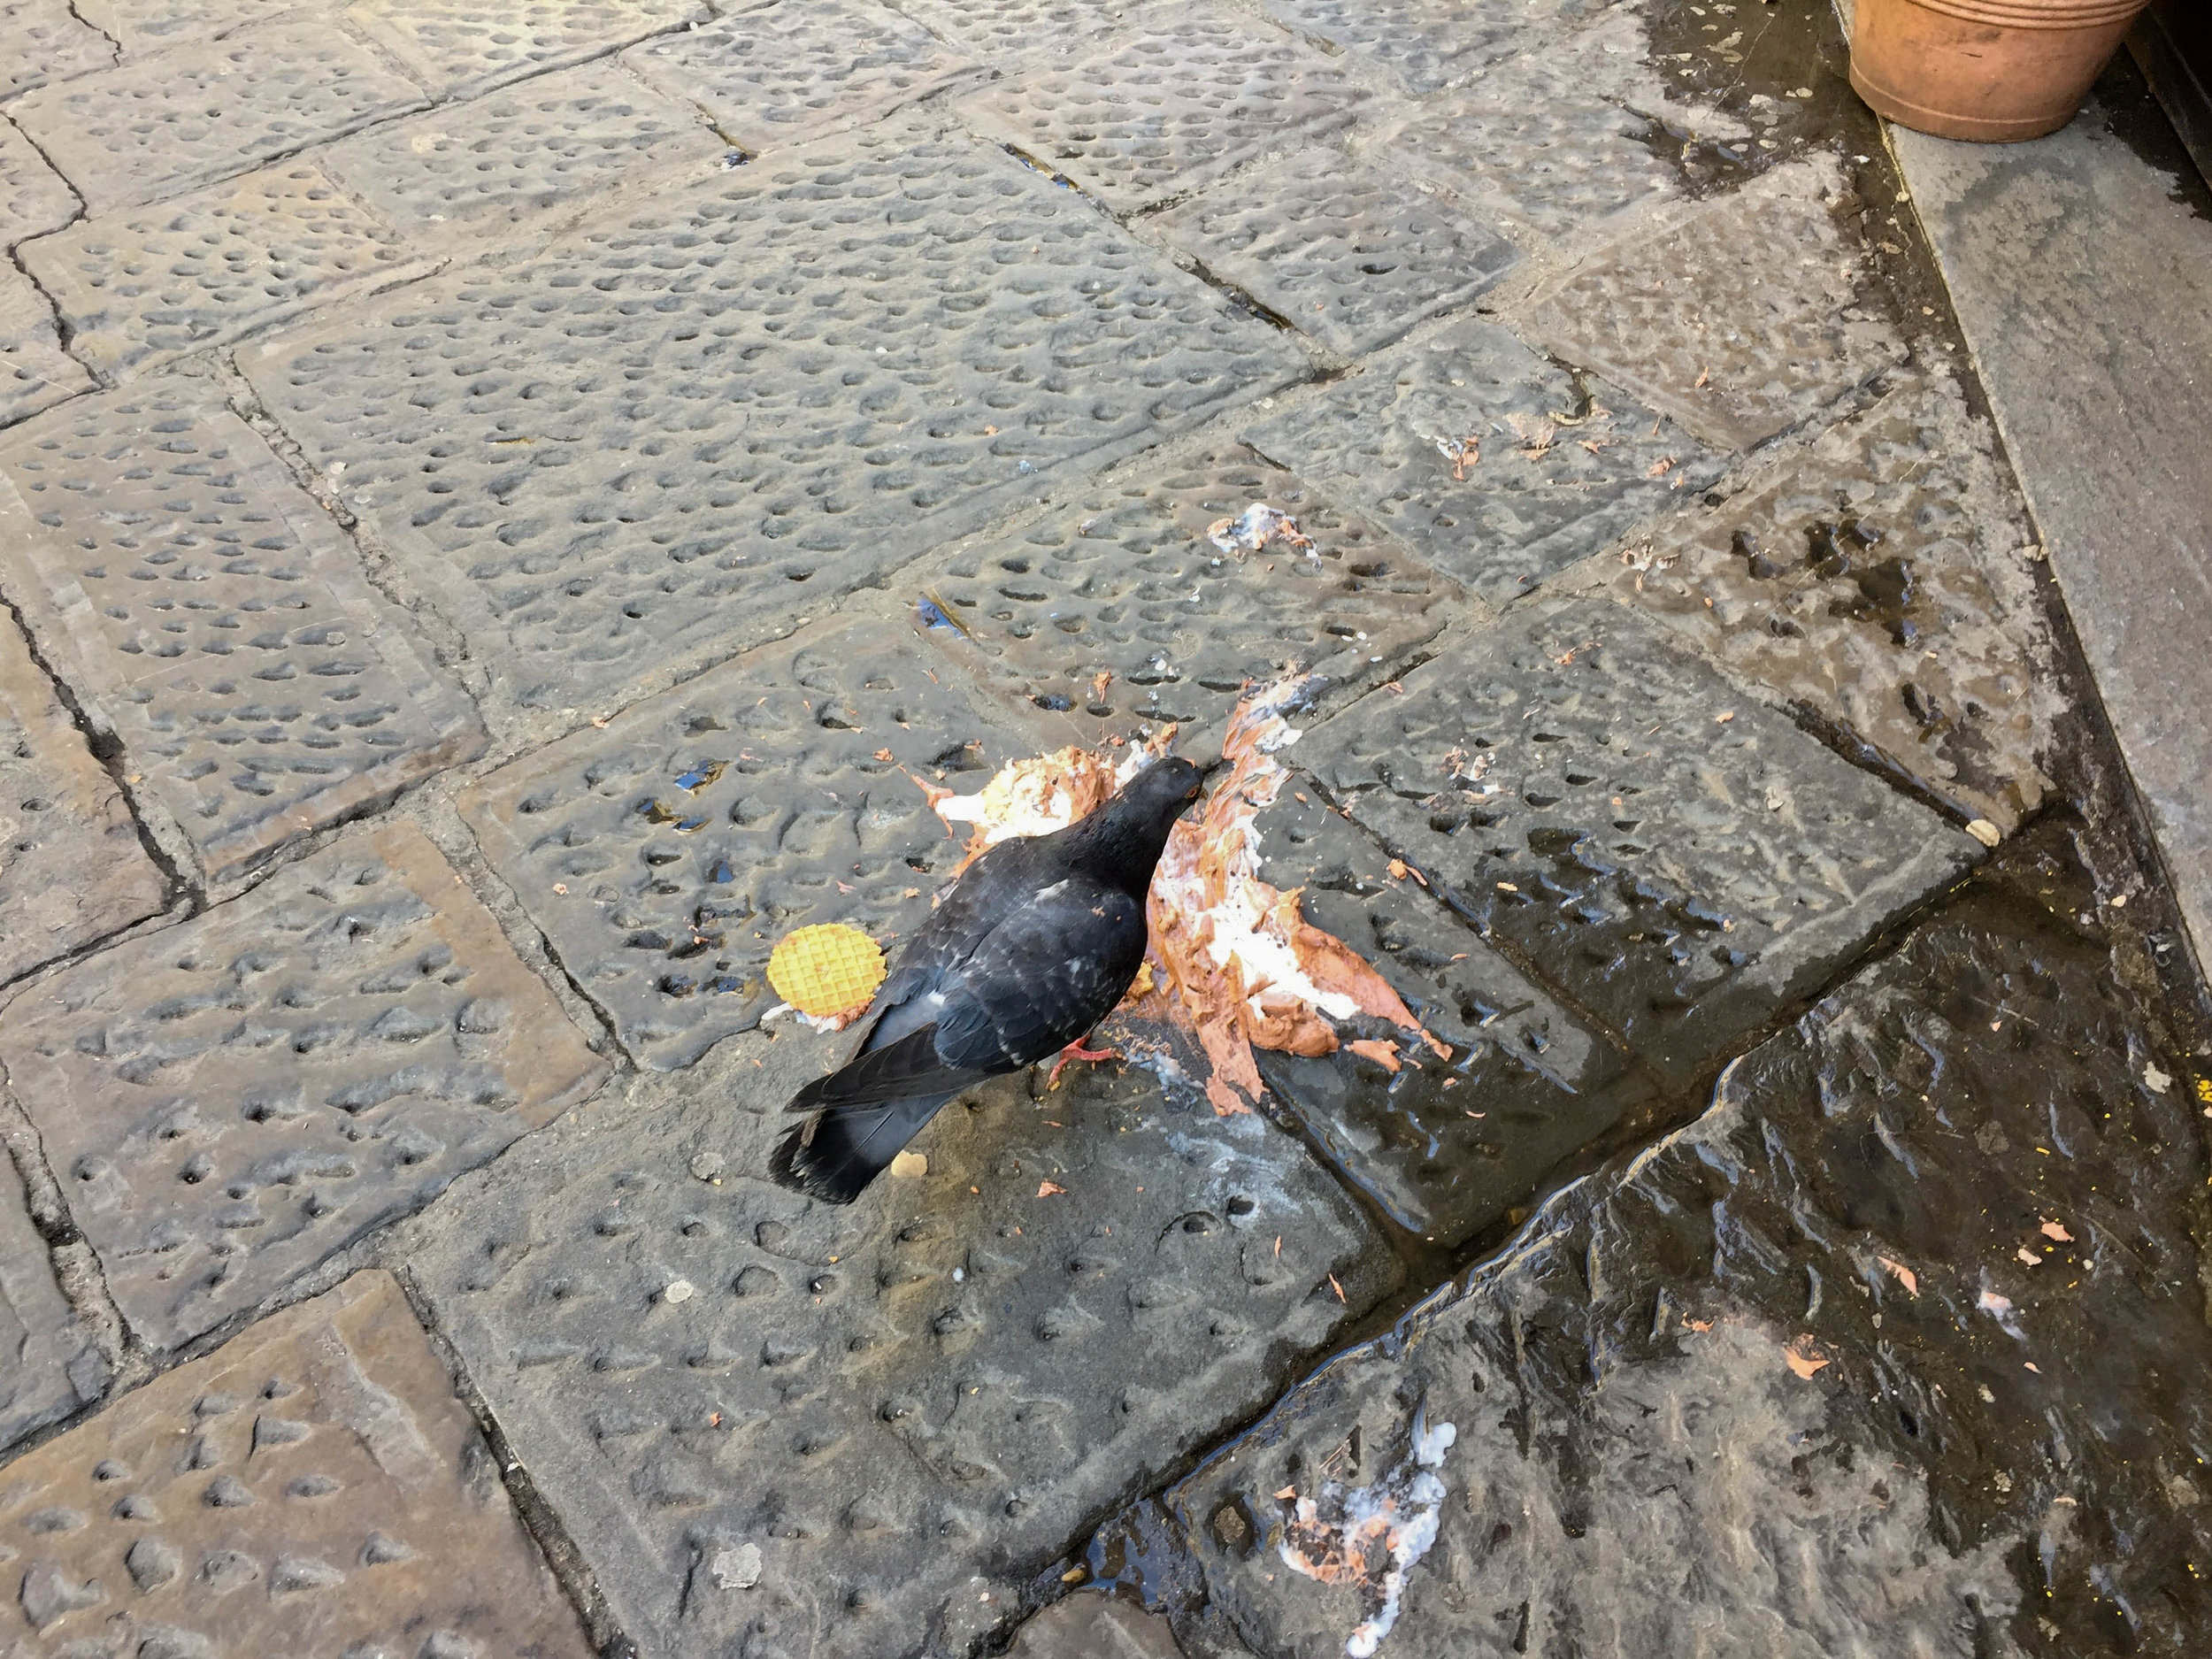 In Italy, even pigeons eat well. We saw them dining on gelato, parmesan rinds, and proscuitto in March 2017.